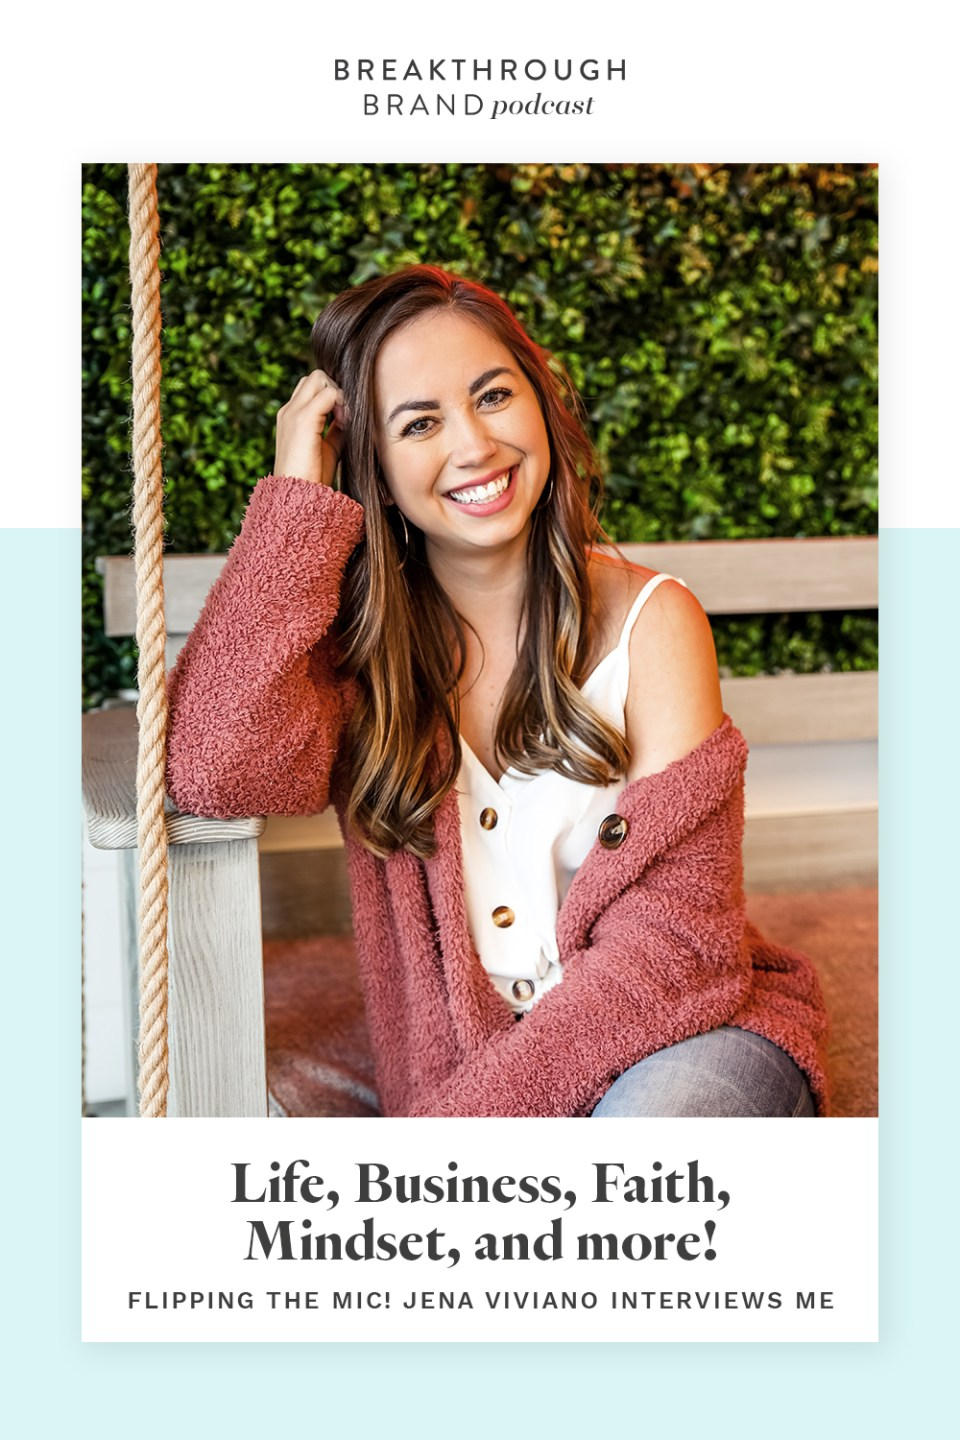 Listen to this Q&A with Elizabeth McCravy on the Breakthrough Brand Podcast all about life, business, mindset, and more!